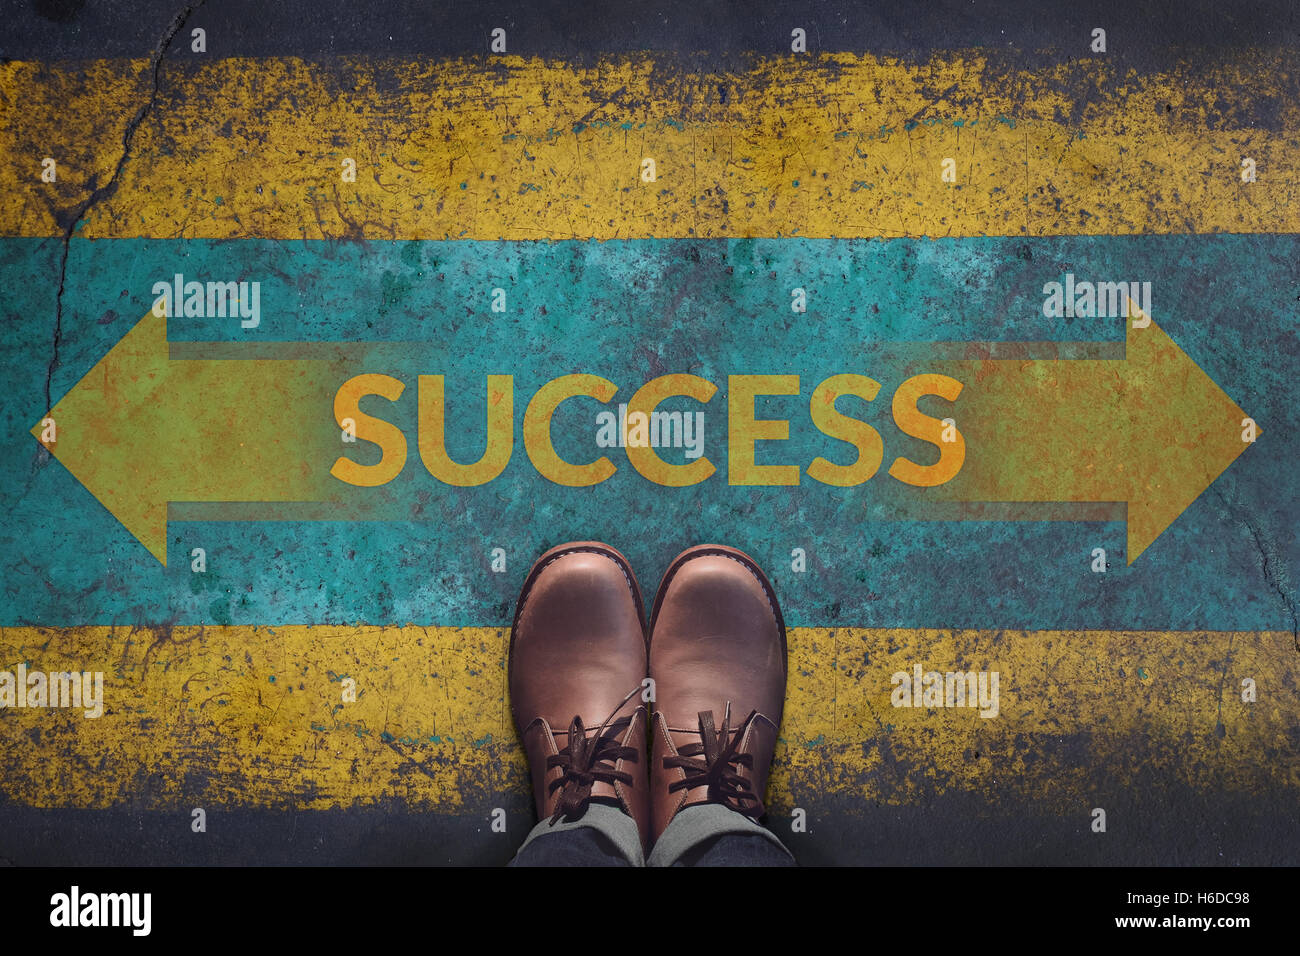 Top view, Male with Leather Shoes, Arrow Sign and word : Success on Grunge Dirty Concrete Floor Background, Making - Stock Image